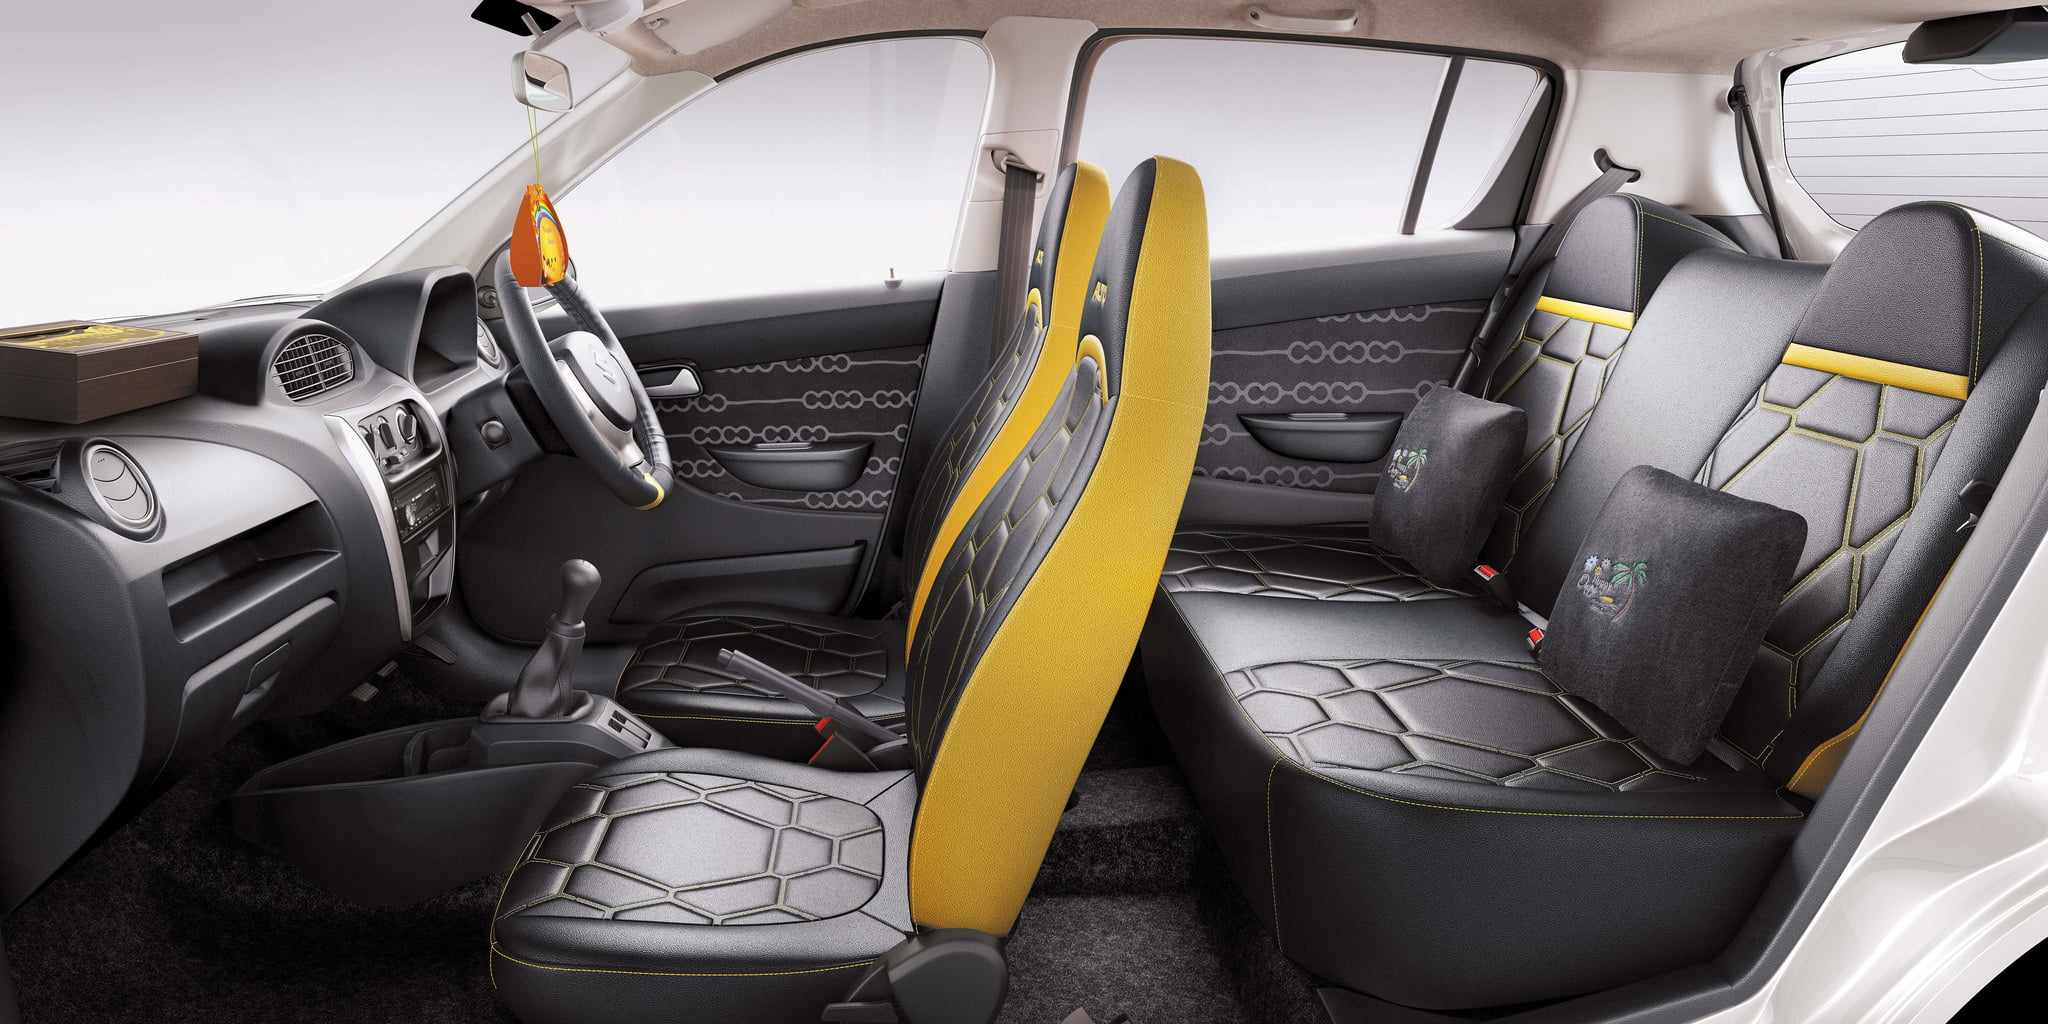 Maruti suzuki alto 800 onam limited edition offer features for Interior decoration of maruti 800